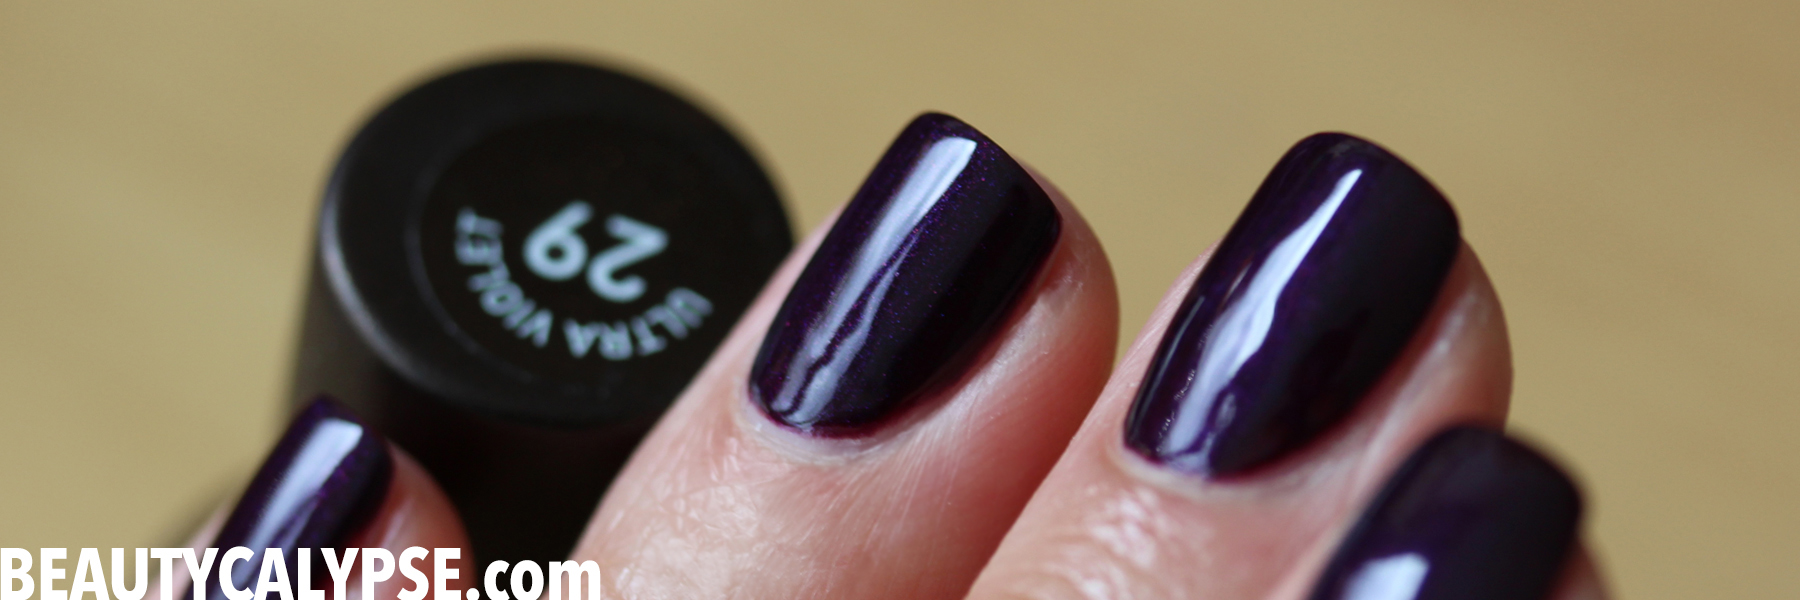 Black Orchid Manicure Seven Days And Counting Beautycalypse The Revelation Of Beauty